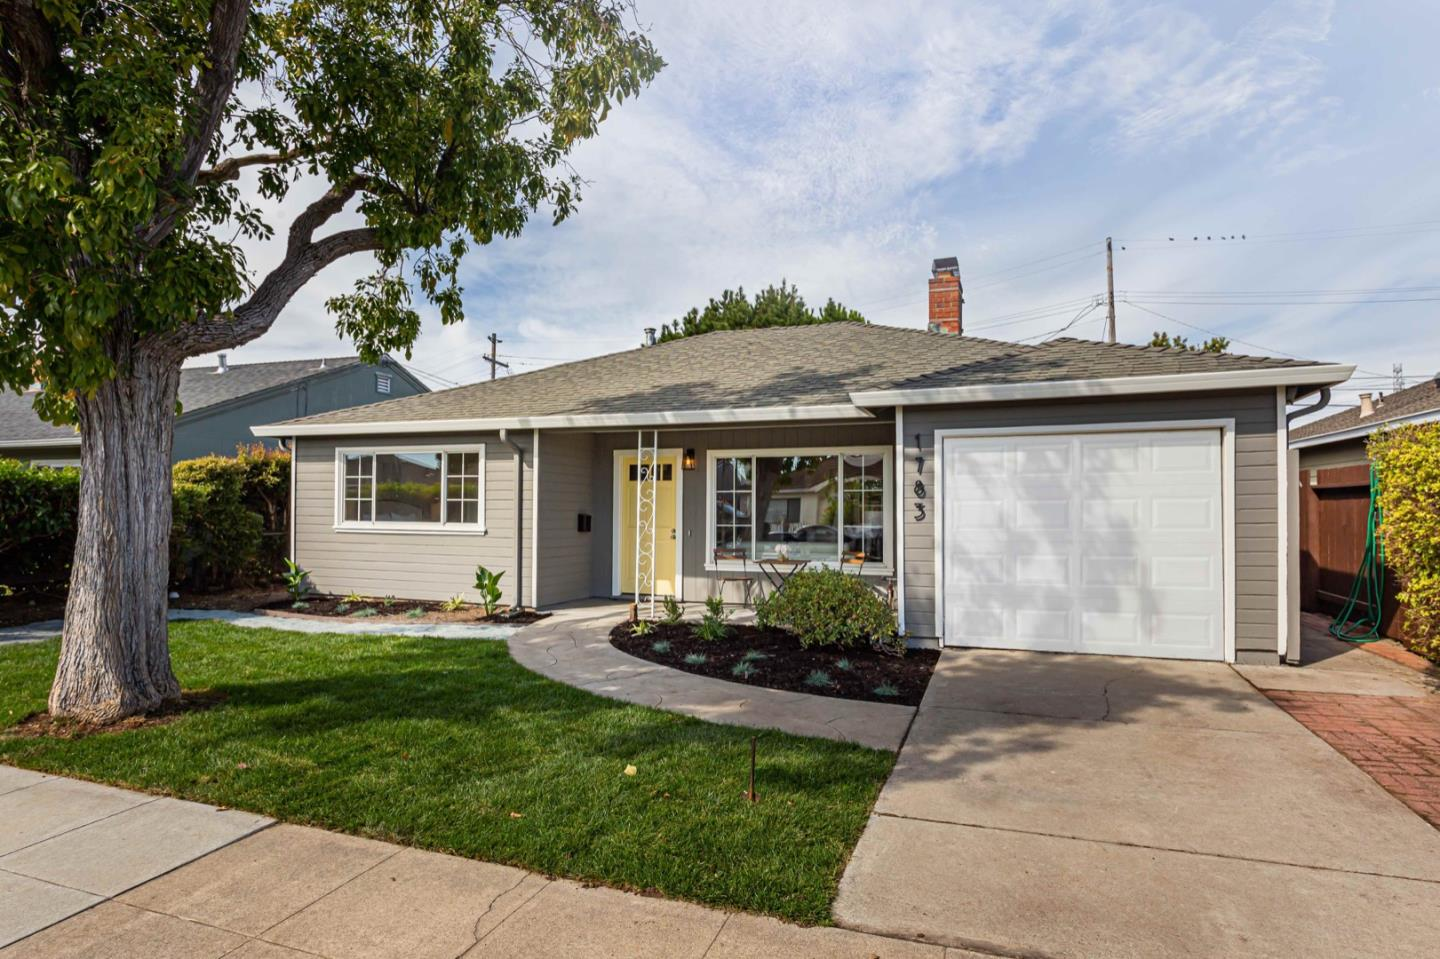 Photo for 1783 Cottage Grove AVE, SAN MATEO, CA 94401 (MLS # ML81771864)